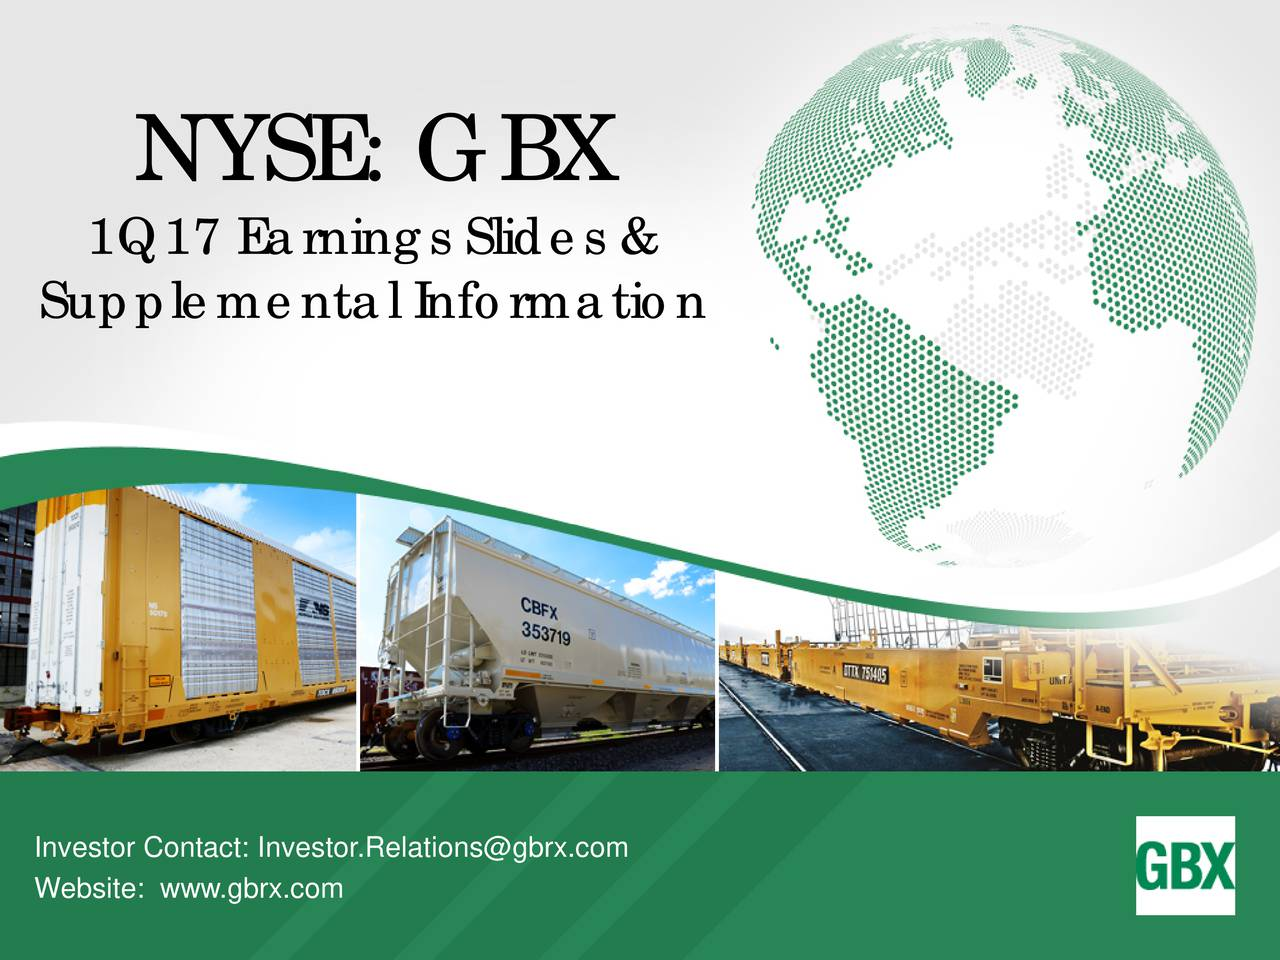 1Q17 Earnings Slides & Supplemental Information Investor Contact: Investor.Relations@gbrx.com Website: www.gbrx.com